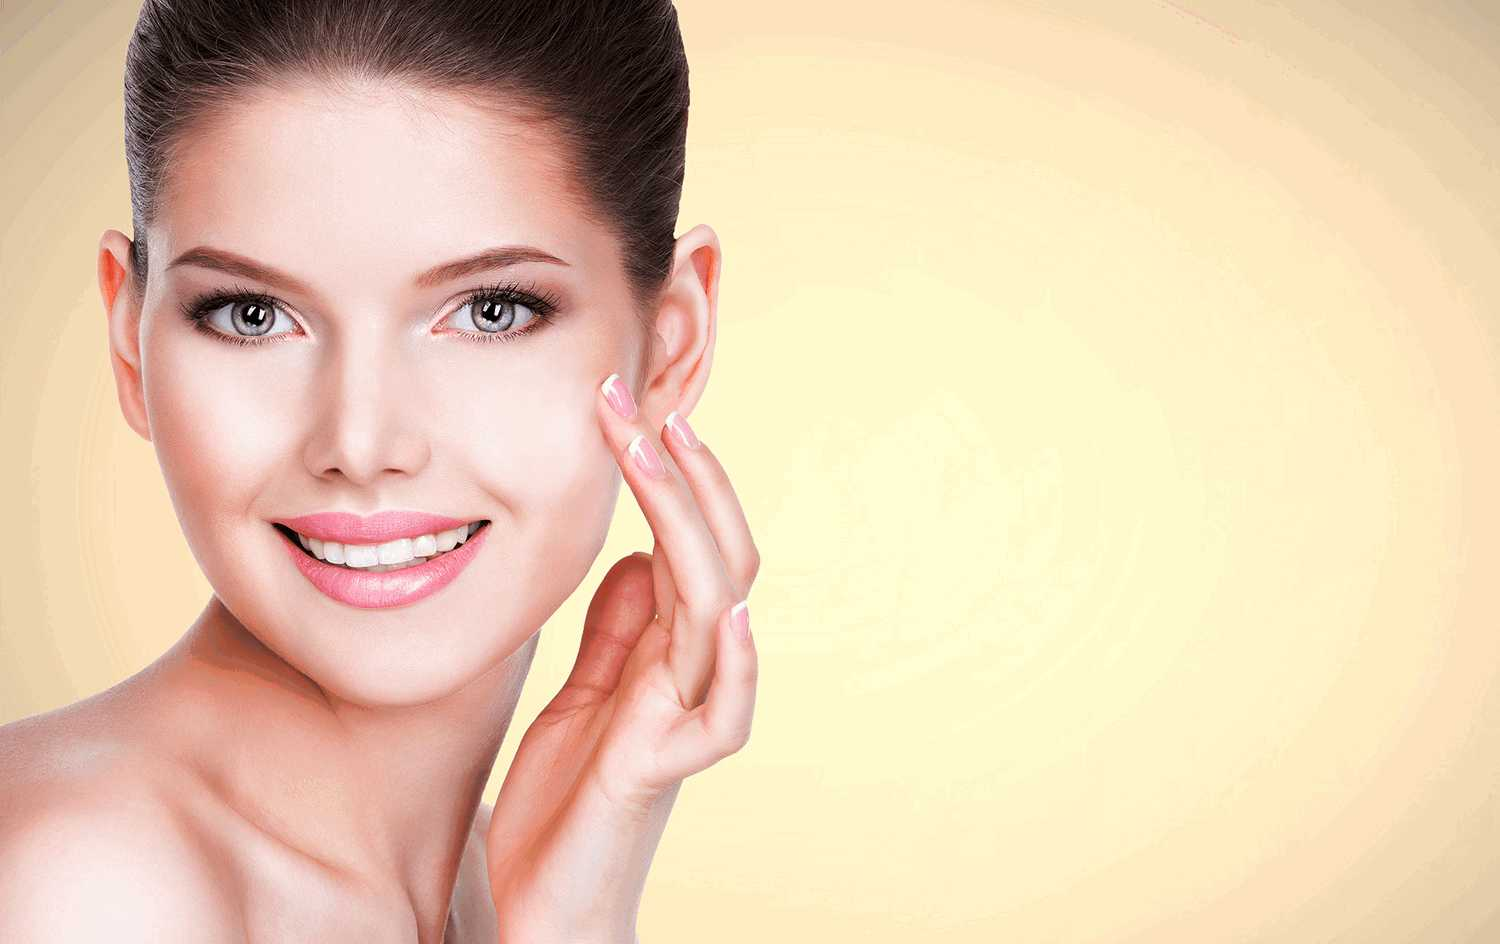 Five Reasons to Choose BIMC for Plastic Surgery